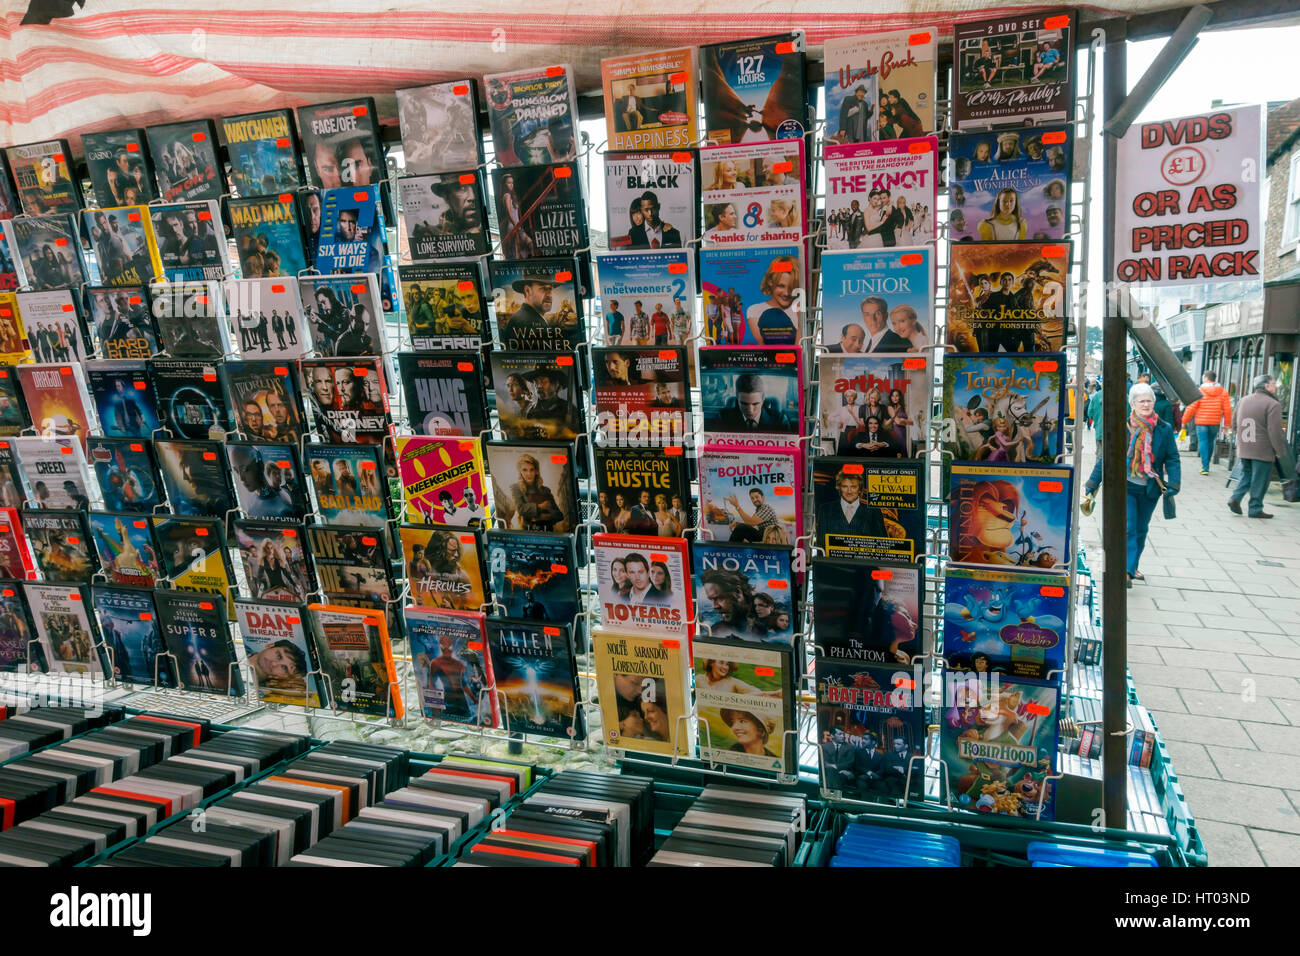 Used Dvds For Sale >> A Display Of Used Film Dvd S Priced At 1 Each For Sale On A